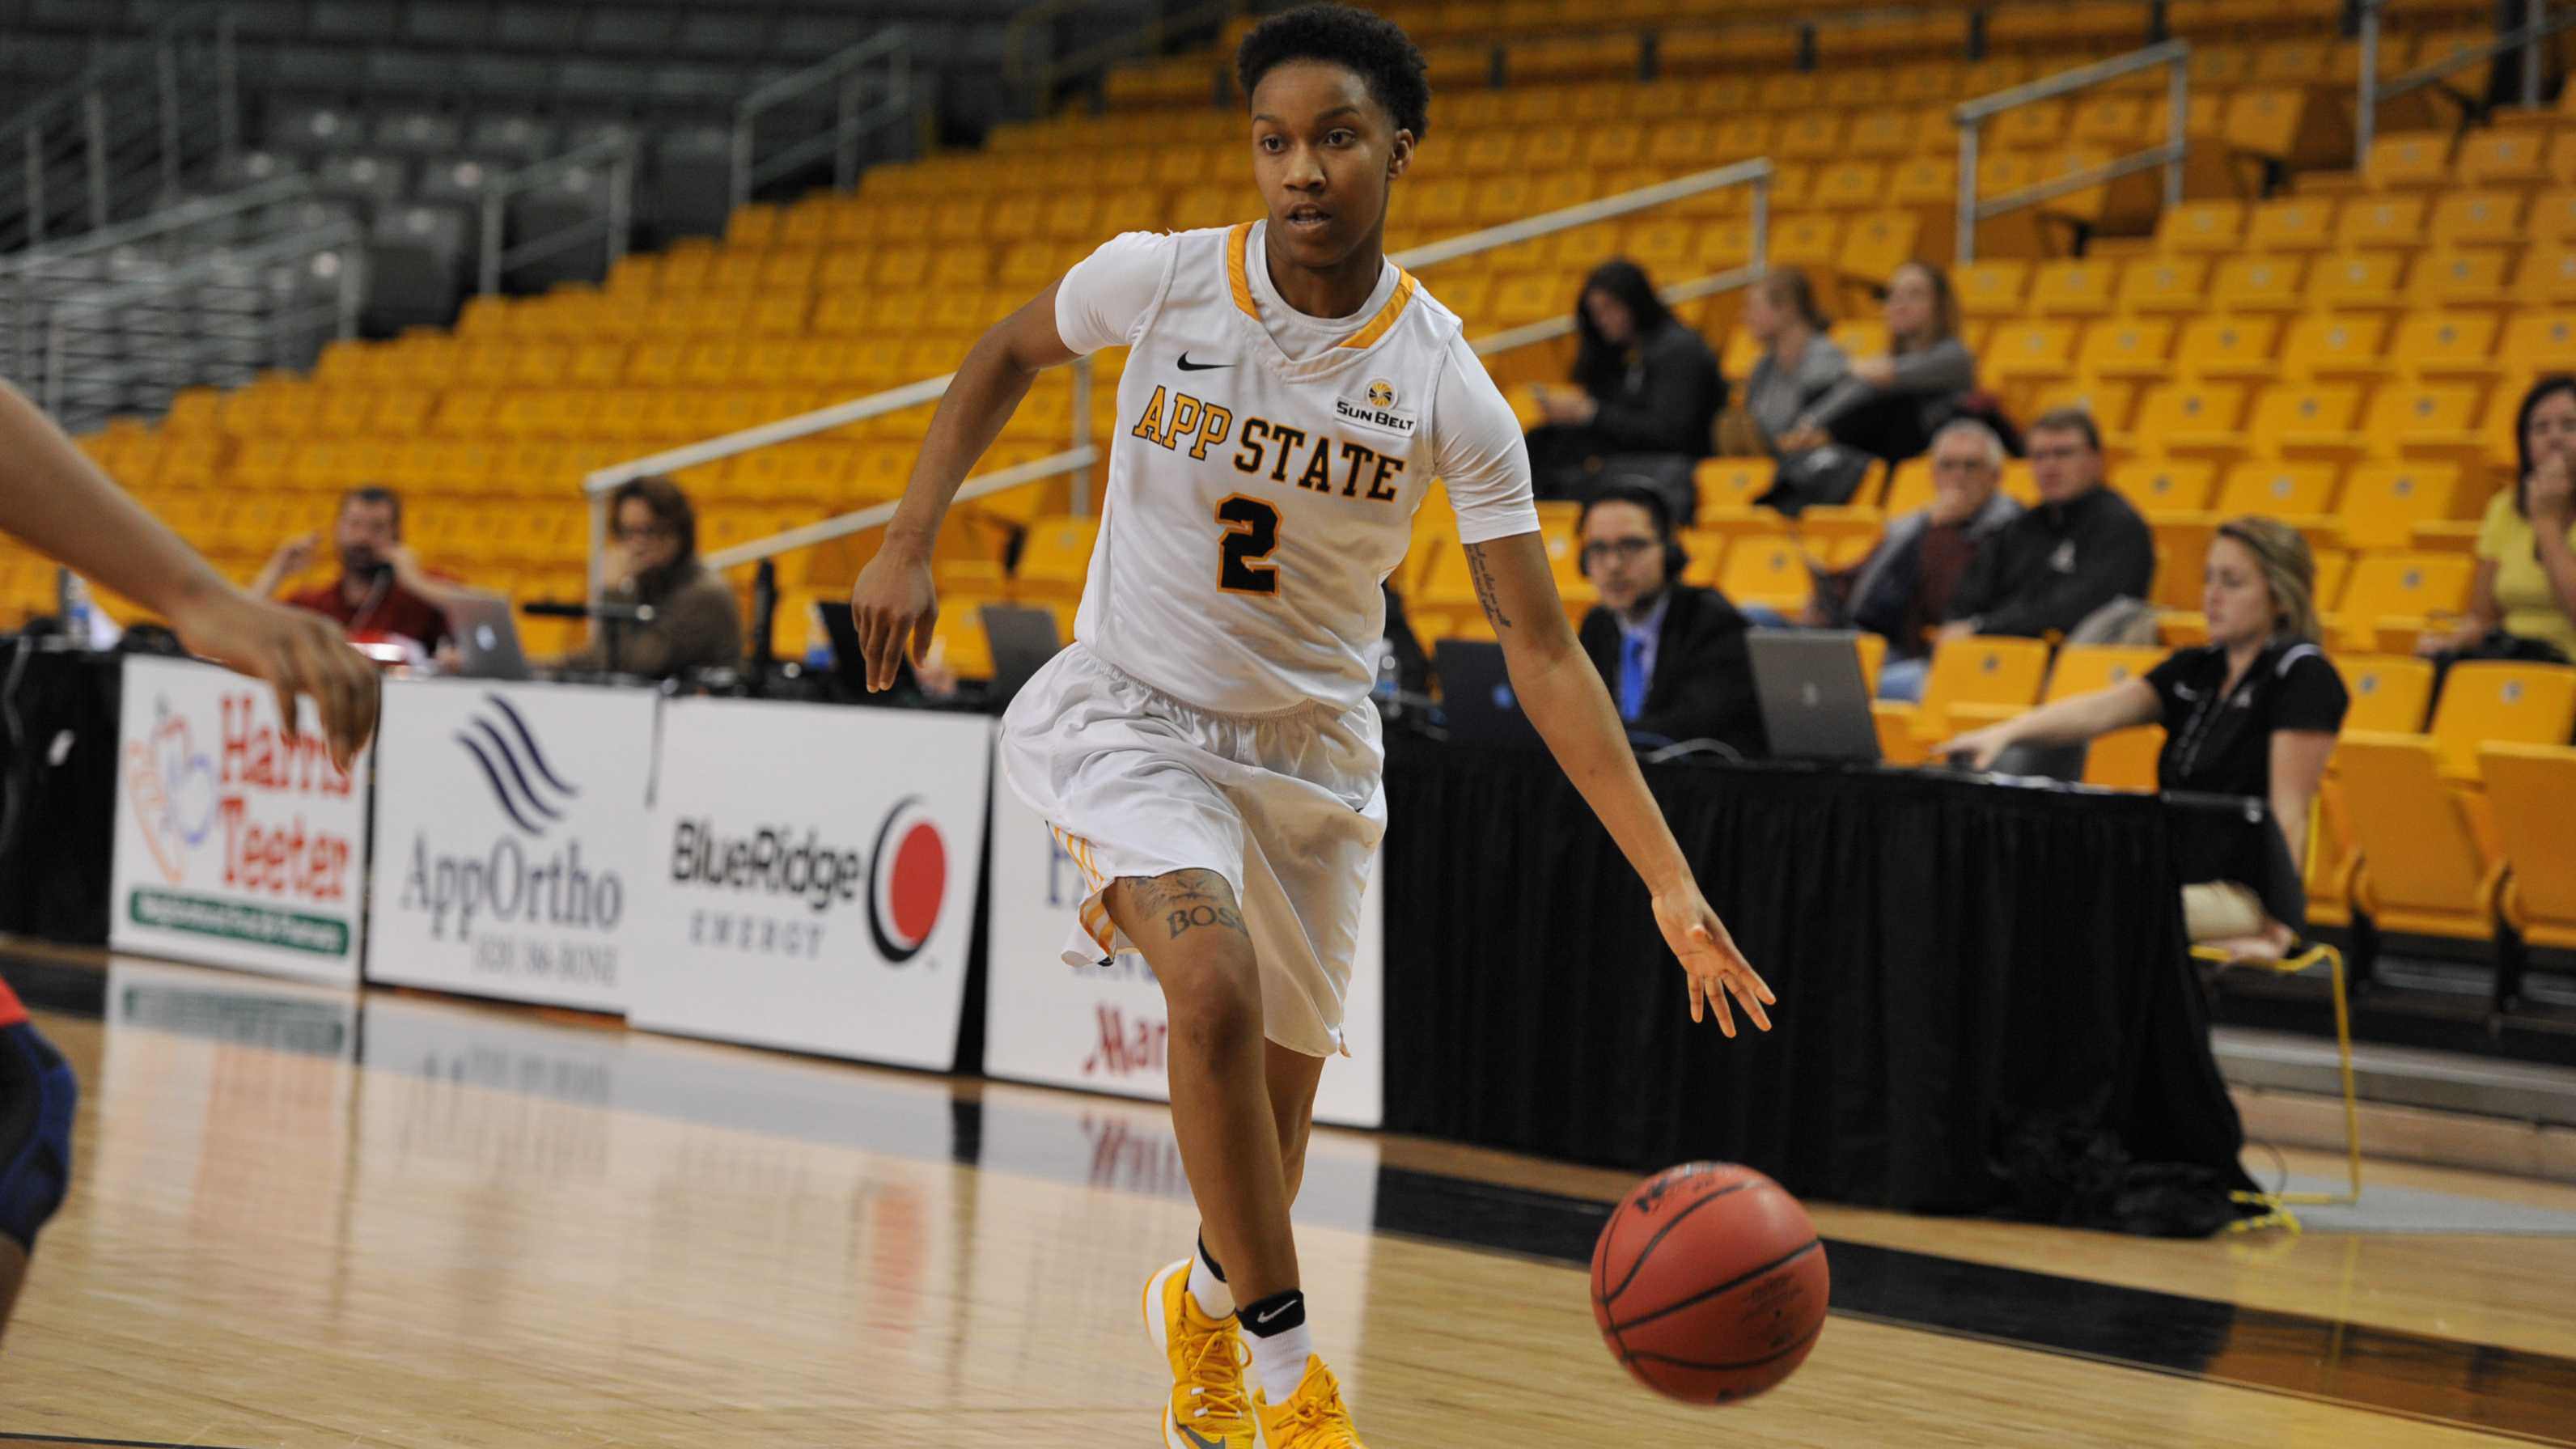 Mountaineers fall to Highlanders after slow start